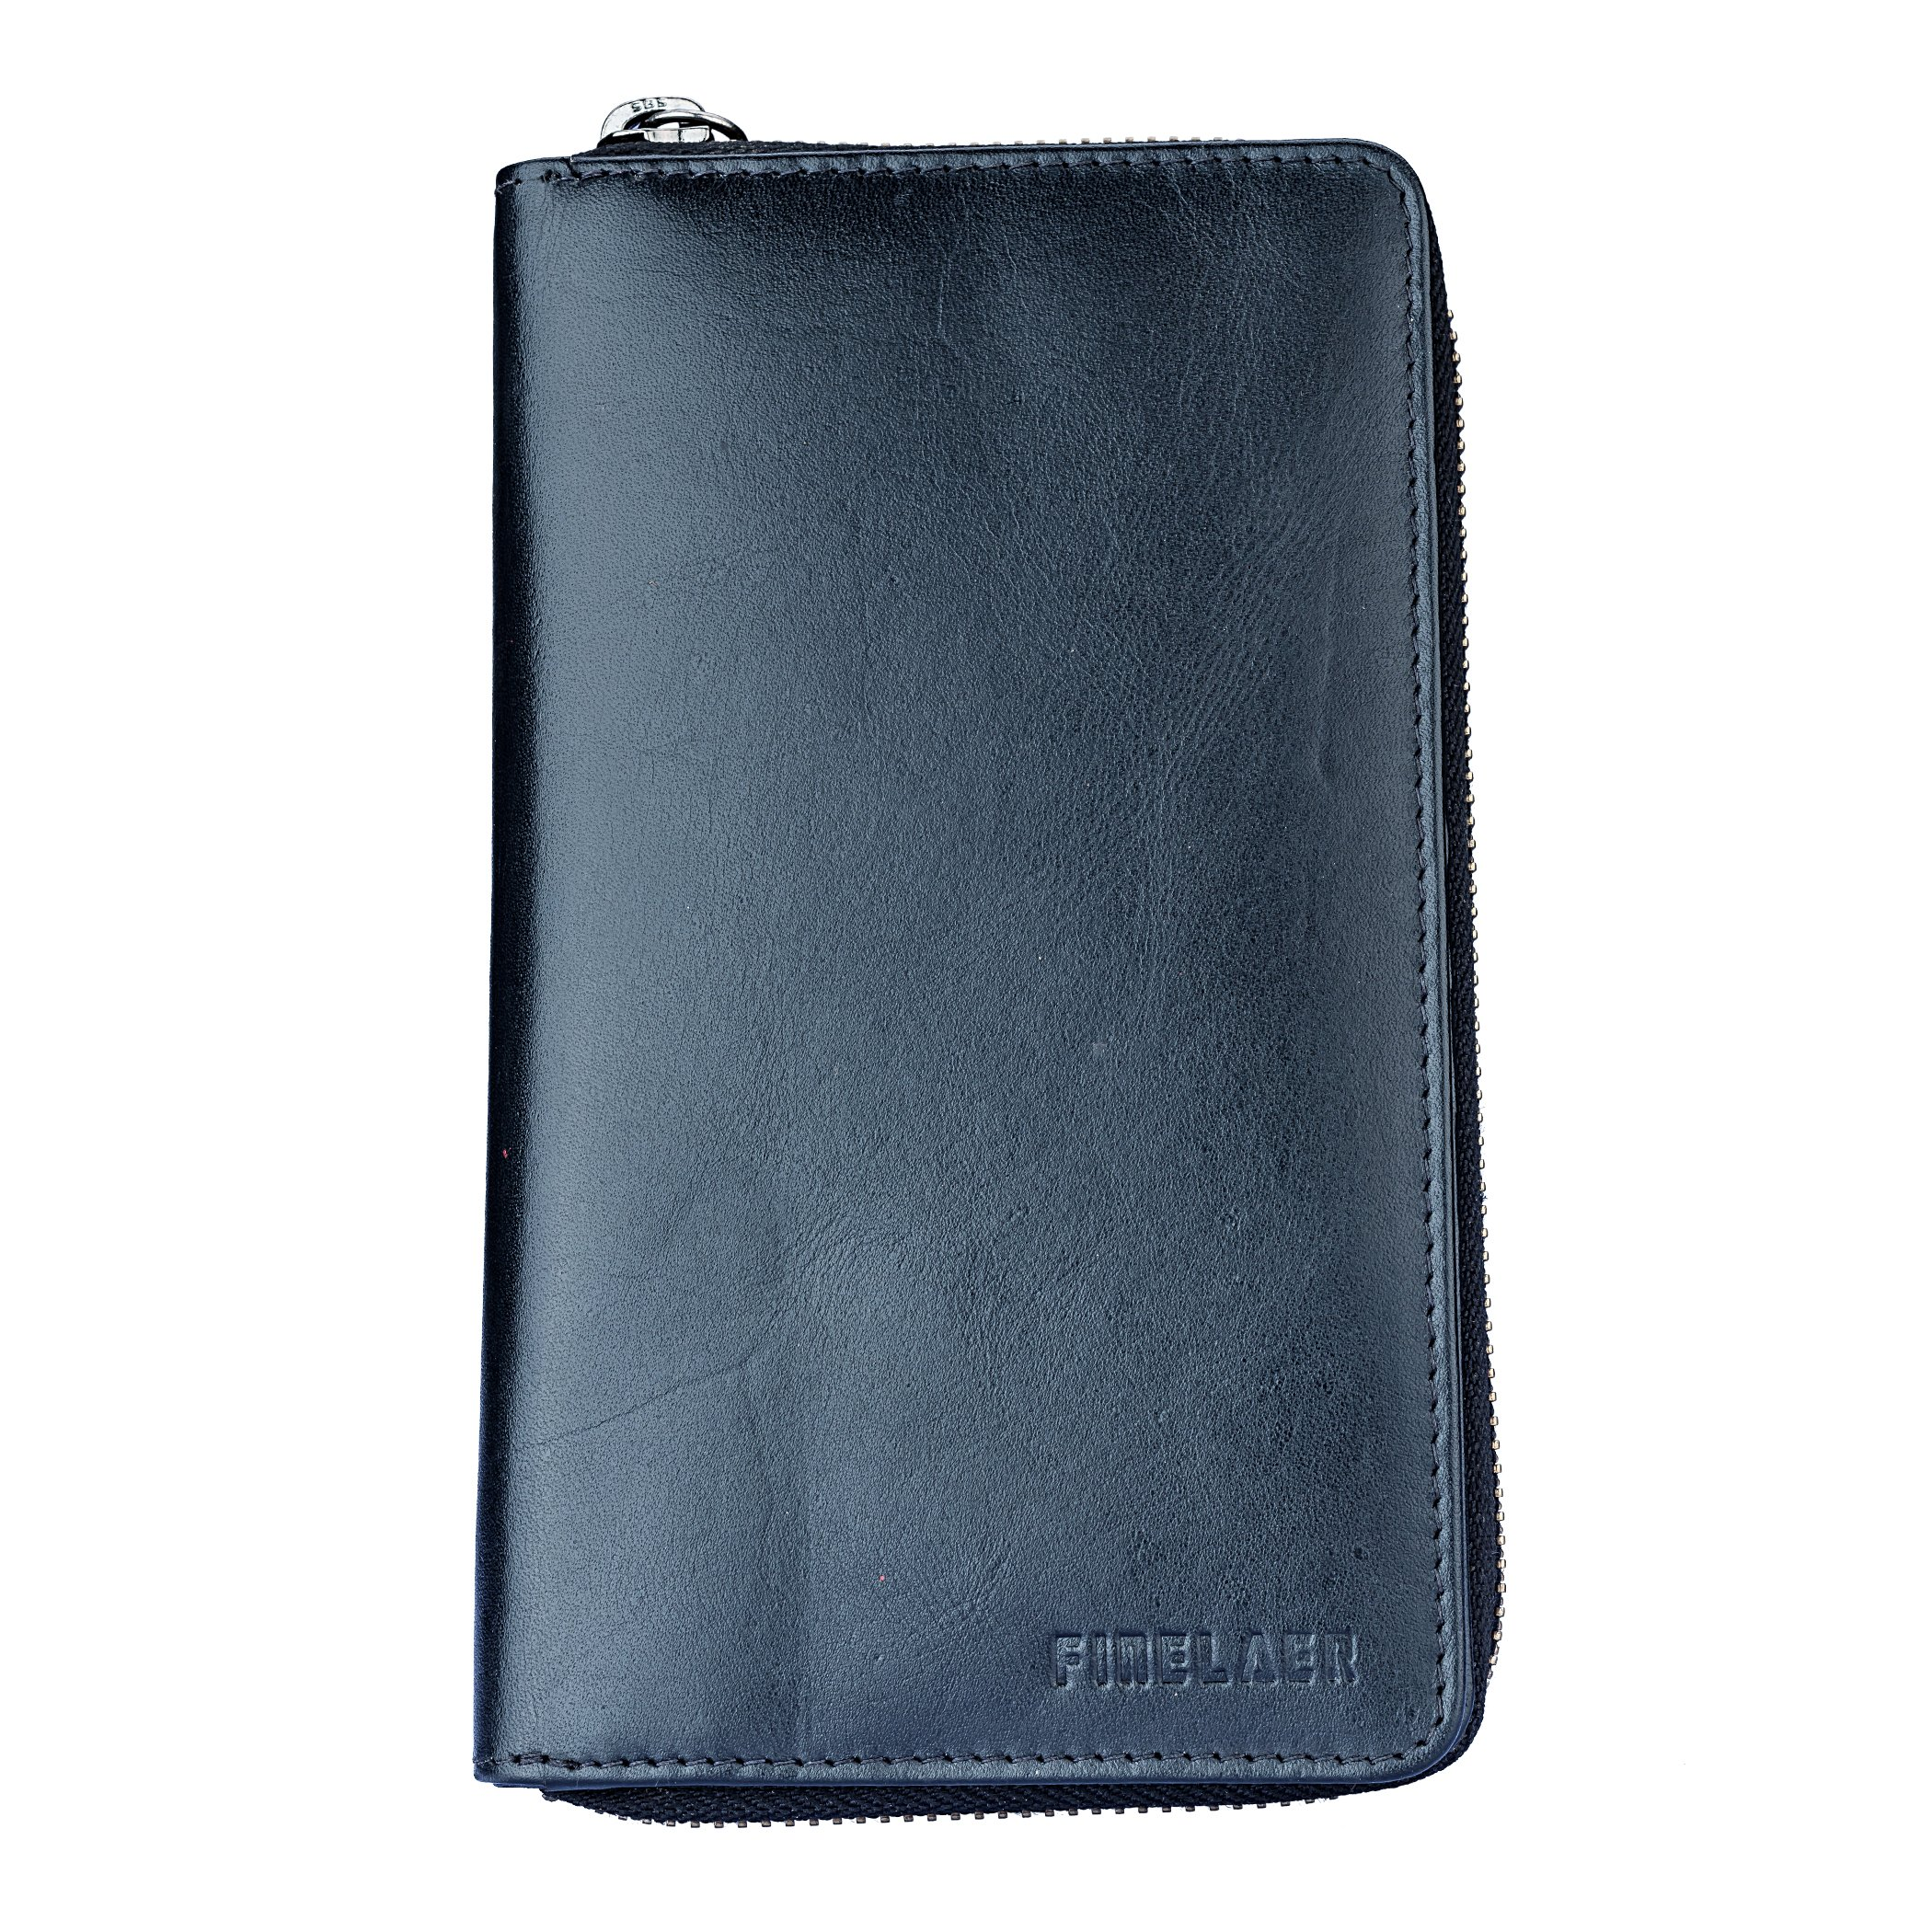 Leather Bifold Travel Wallet Passport Black|Finelaer by FINELAER (Image #1)